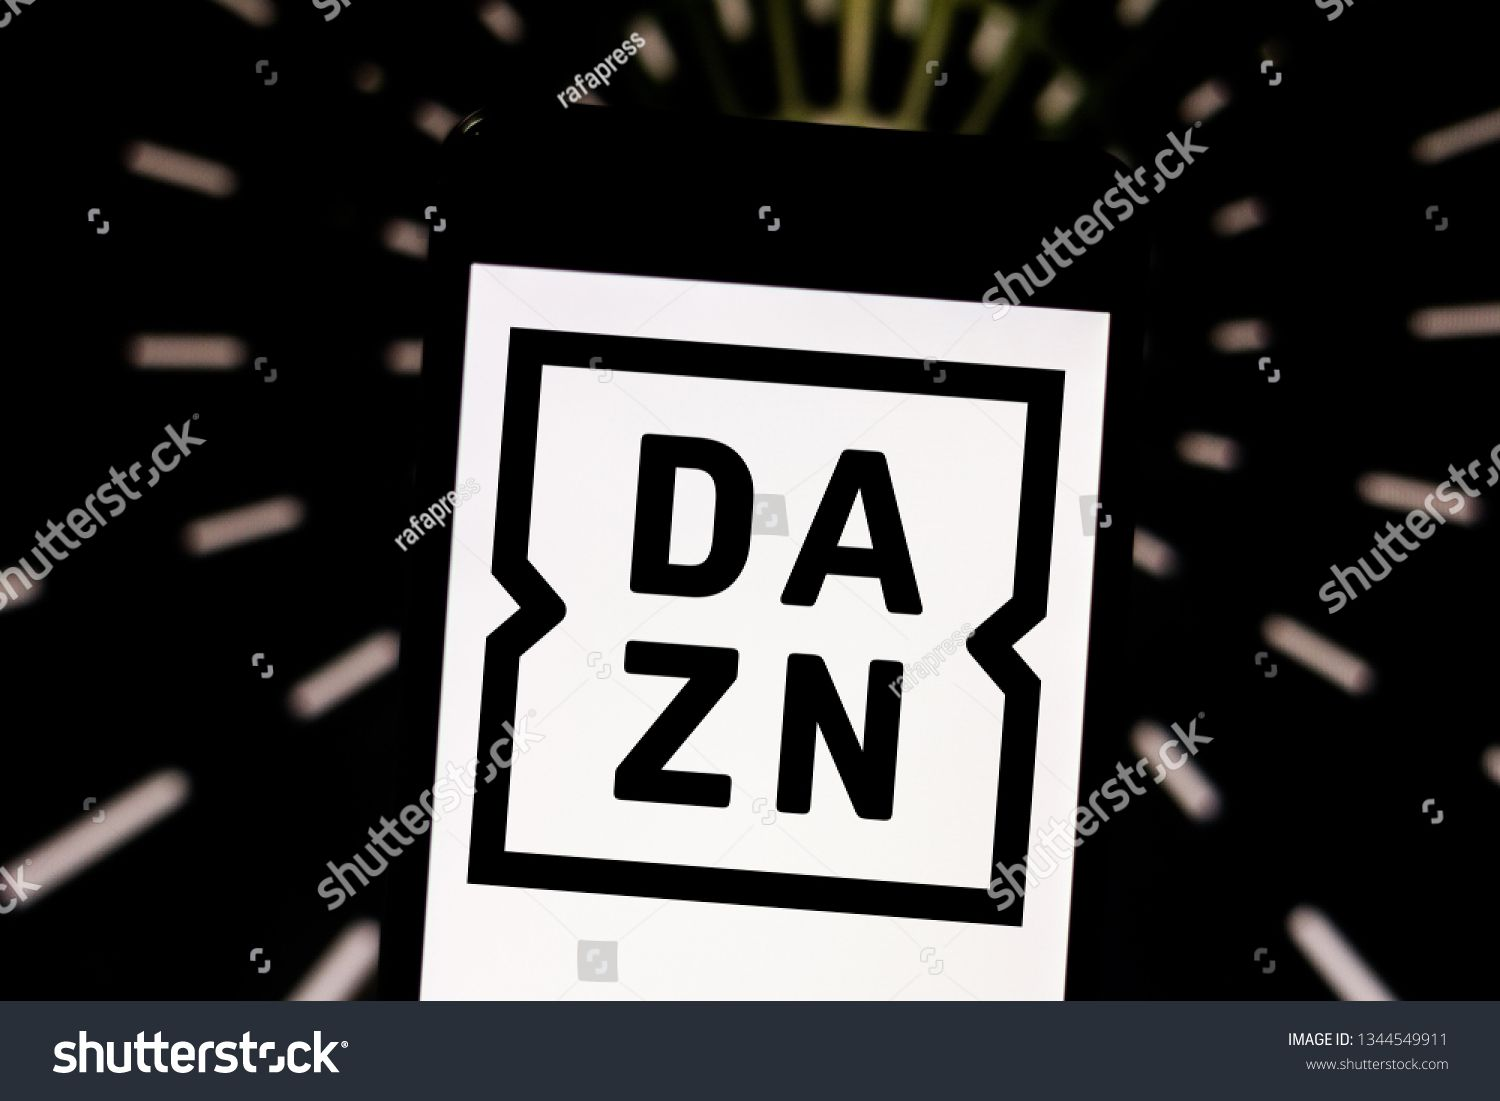 March 20, 2019, Brazil. DAZN logo on mobile device screen.